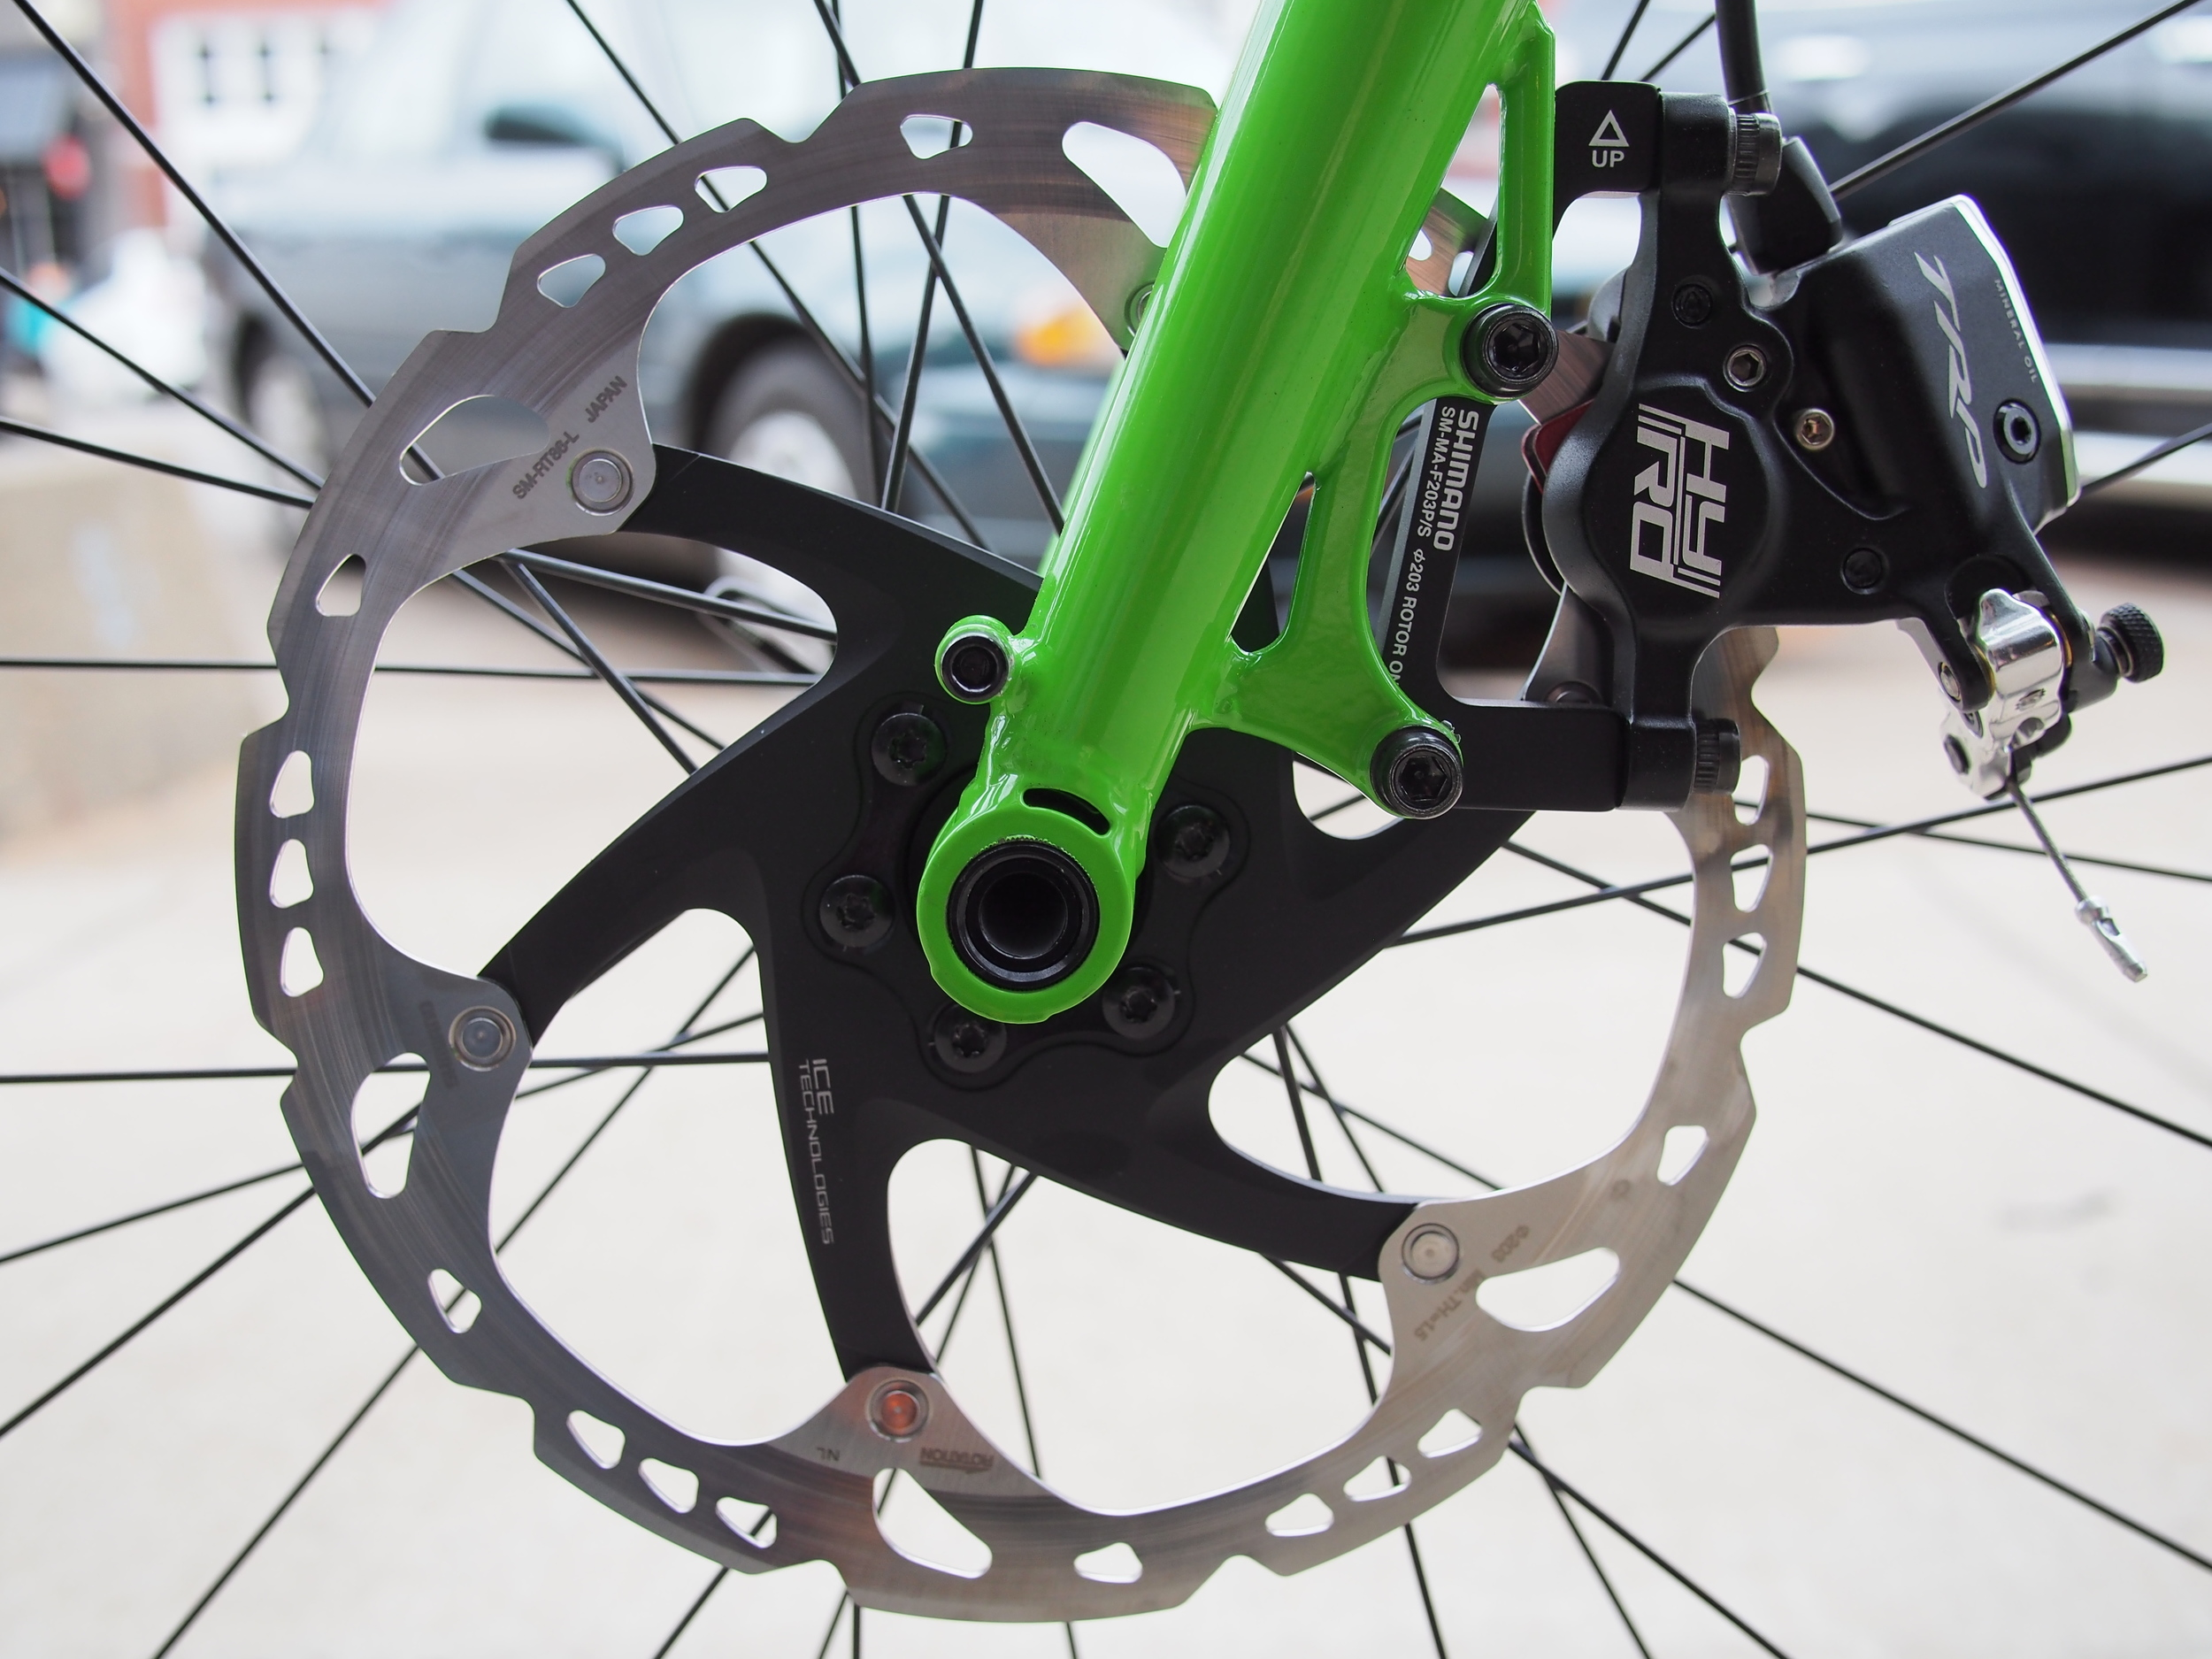 TRP HY/RD are the perfect setup on the tandem. Tons of stopping power.